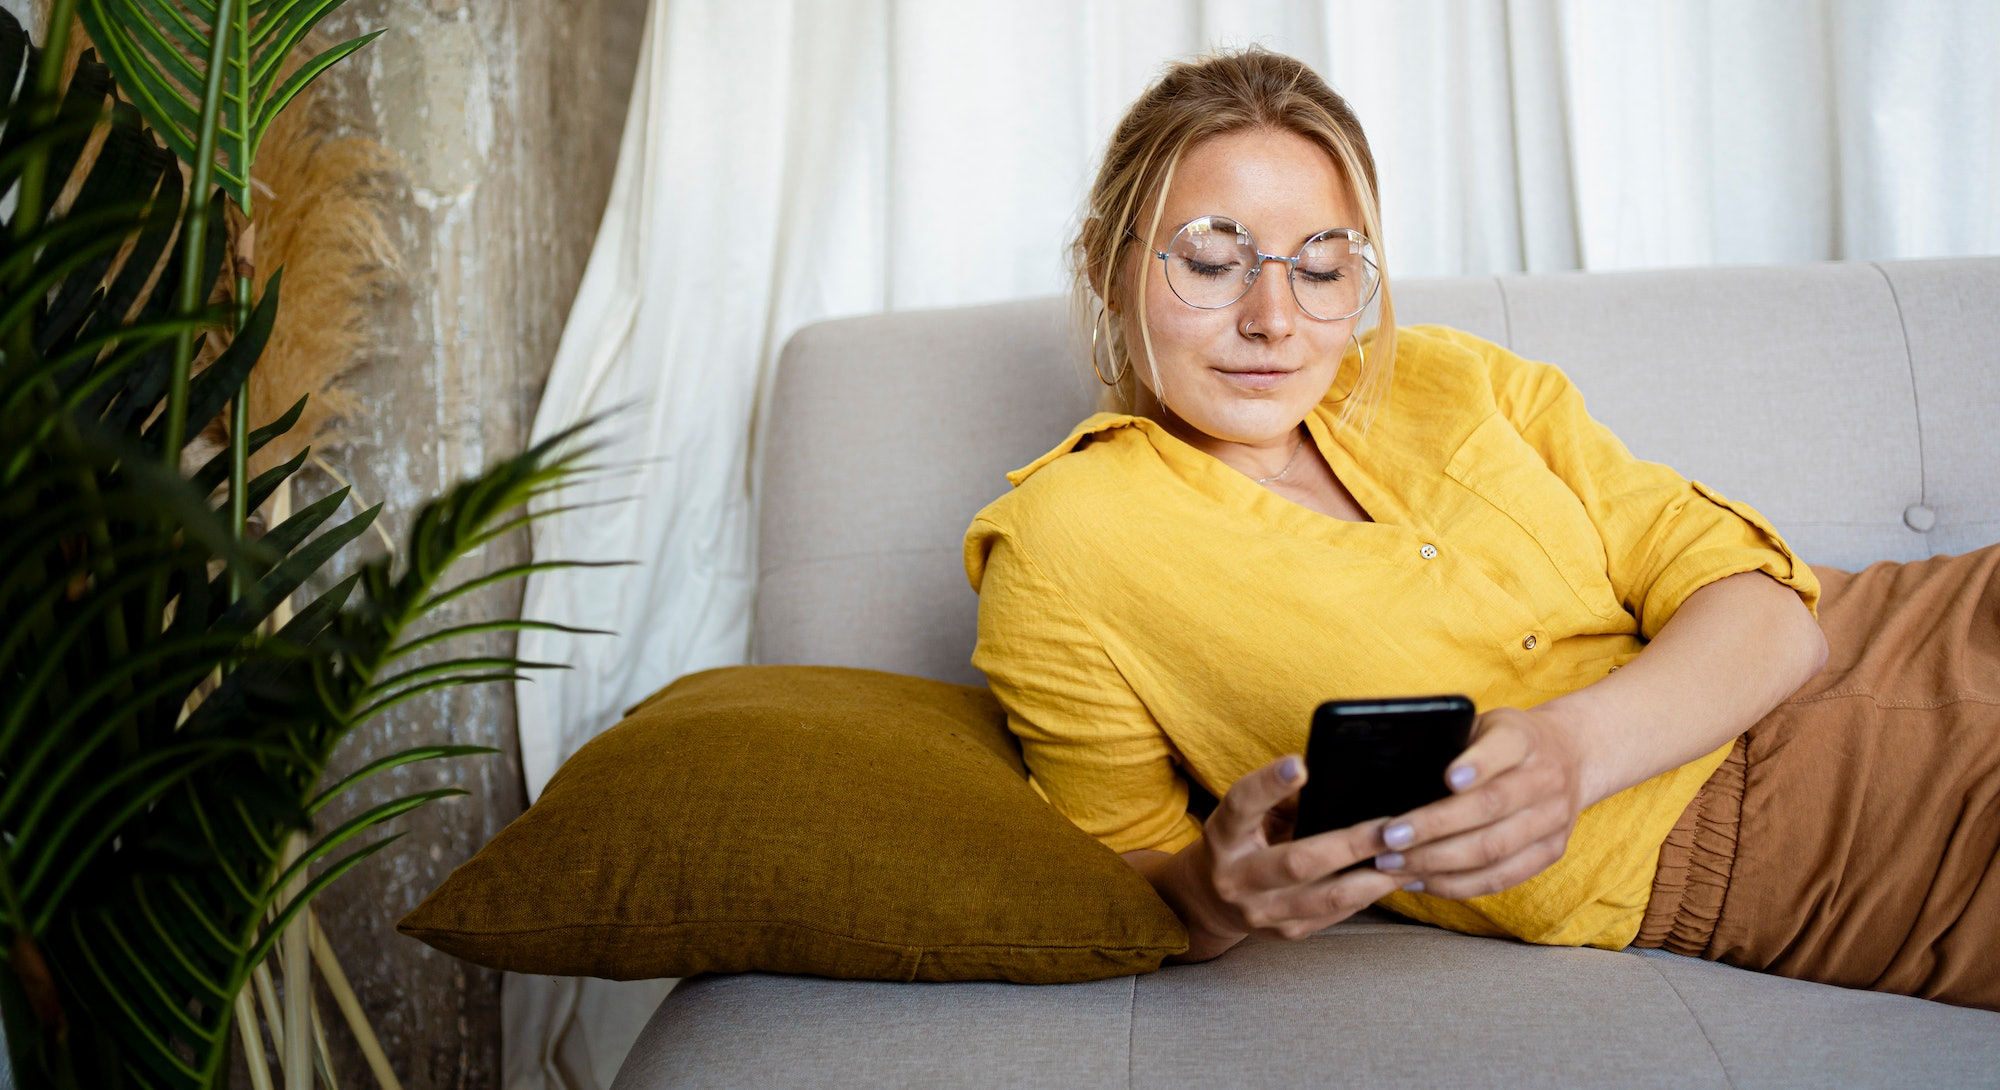 A woman updates her iPhone to iOS 15 for the features.